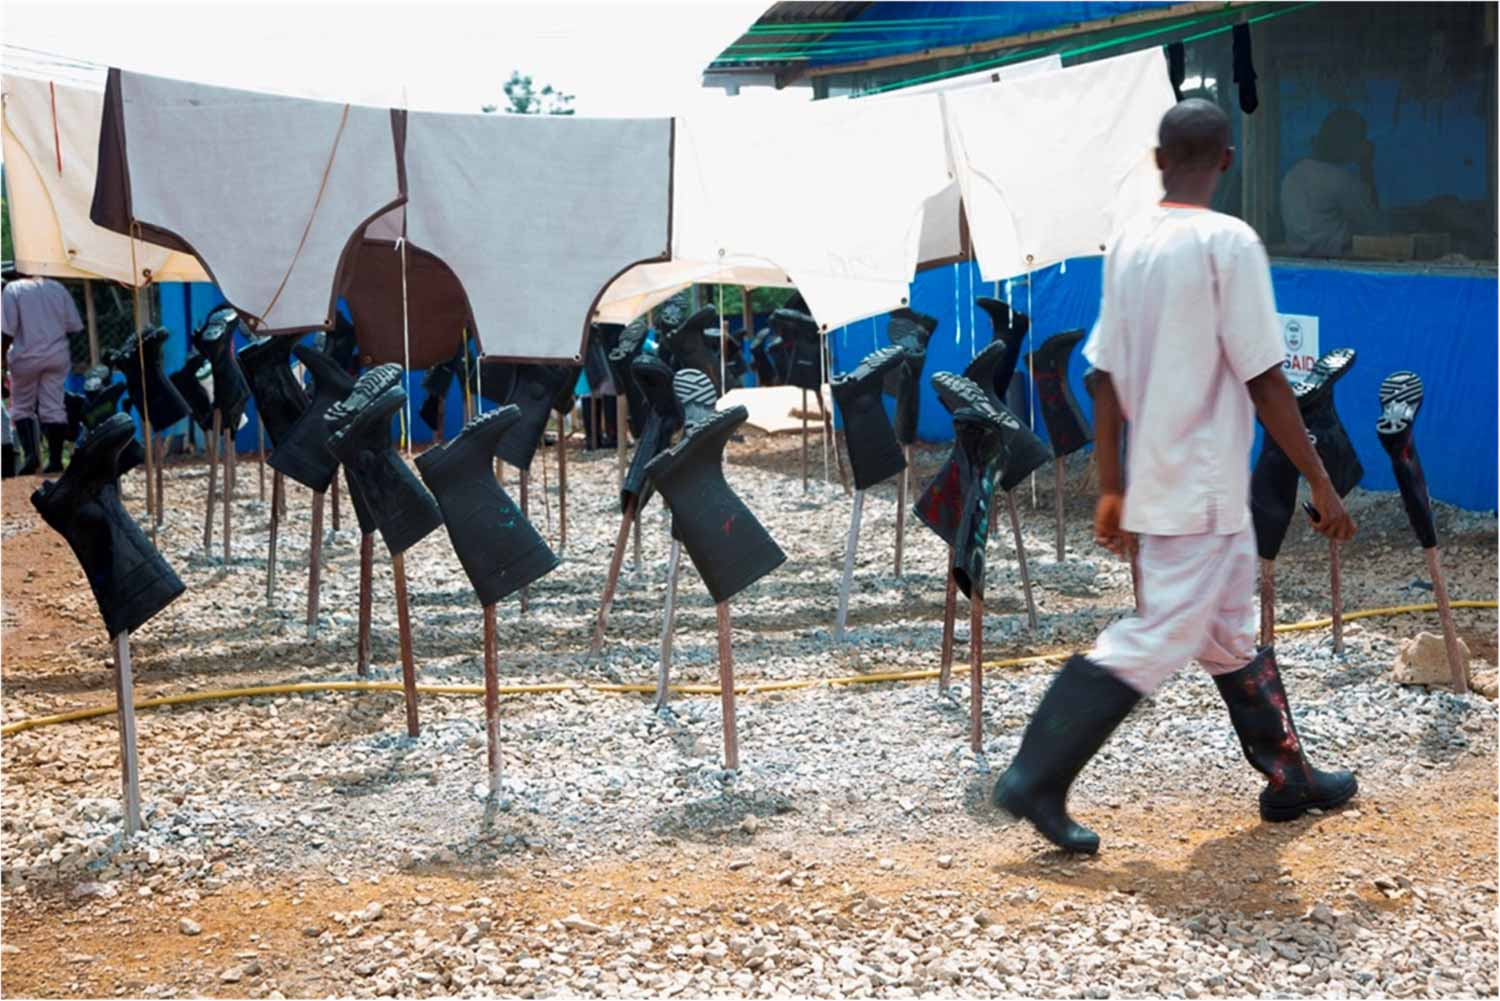 Ethics during Ebola reponse